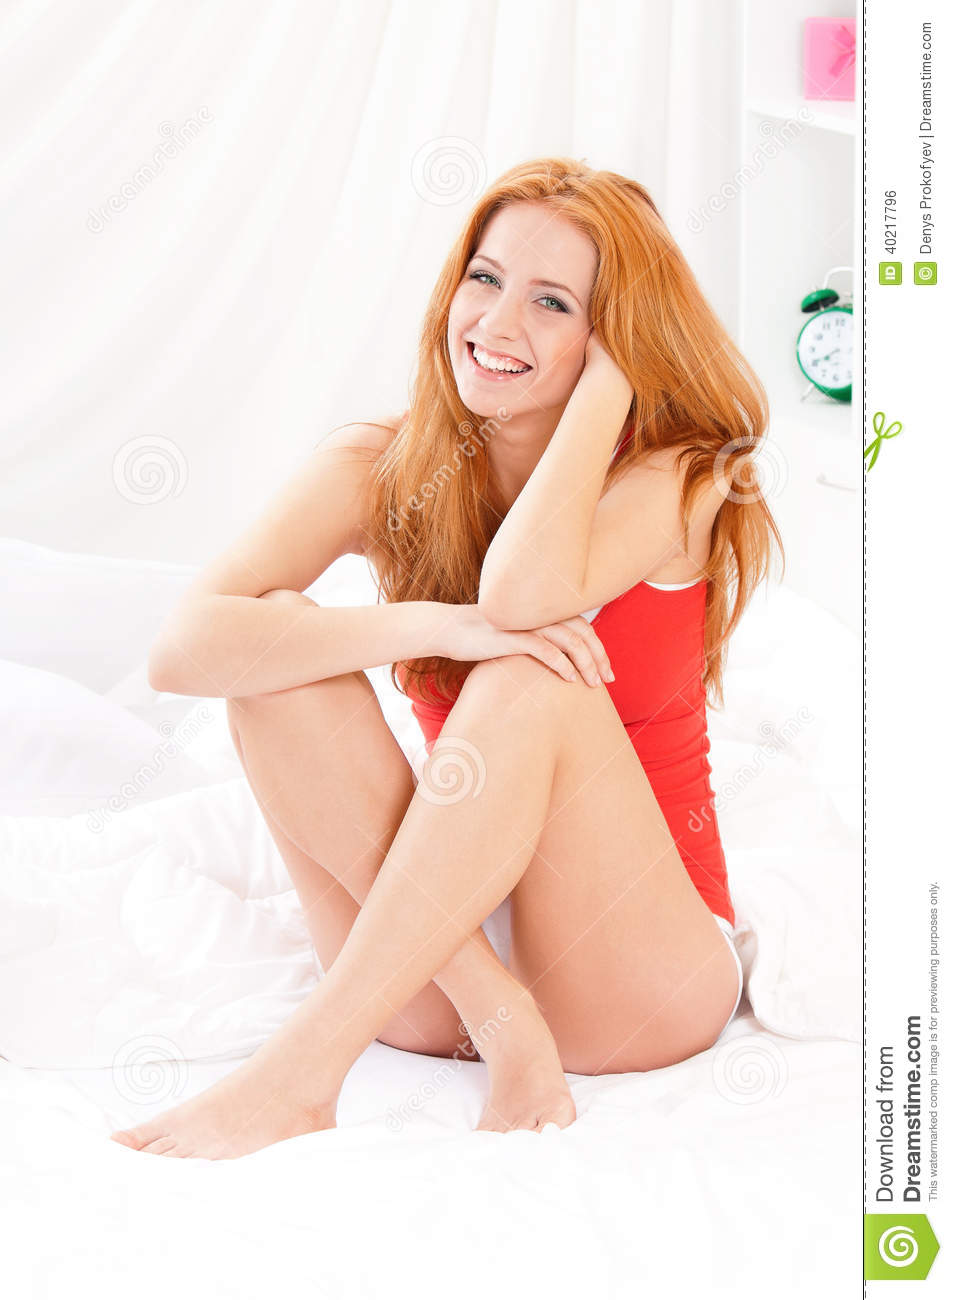 smile naked young lady photo